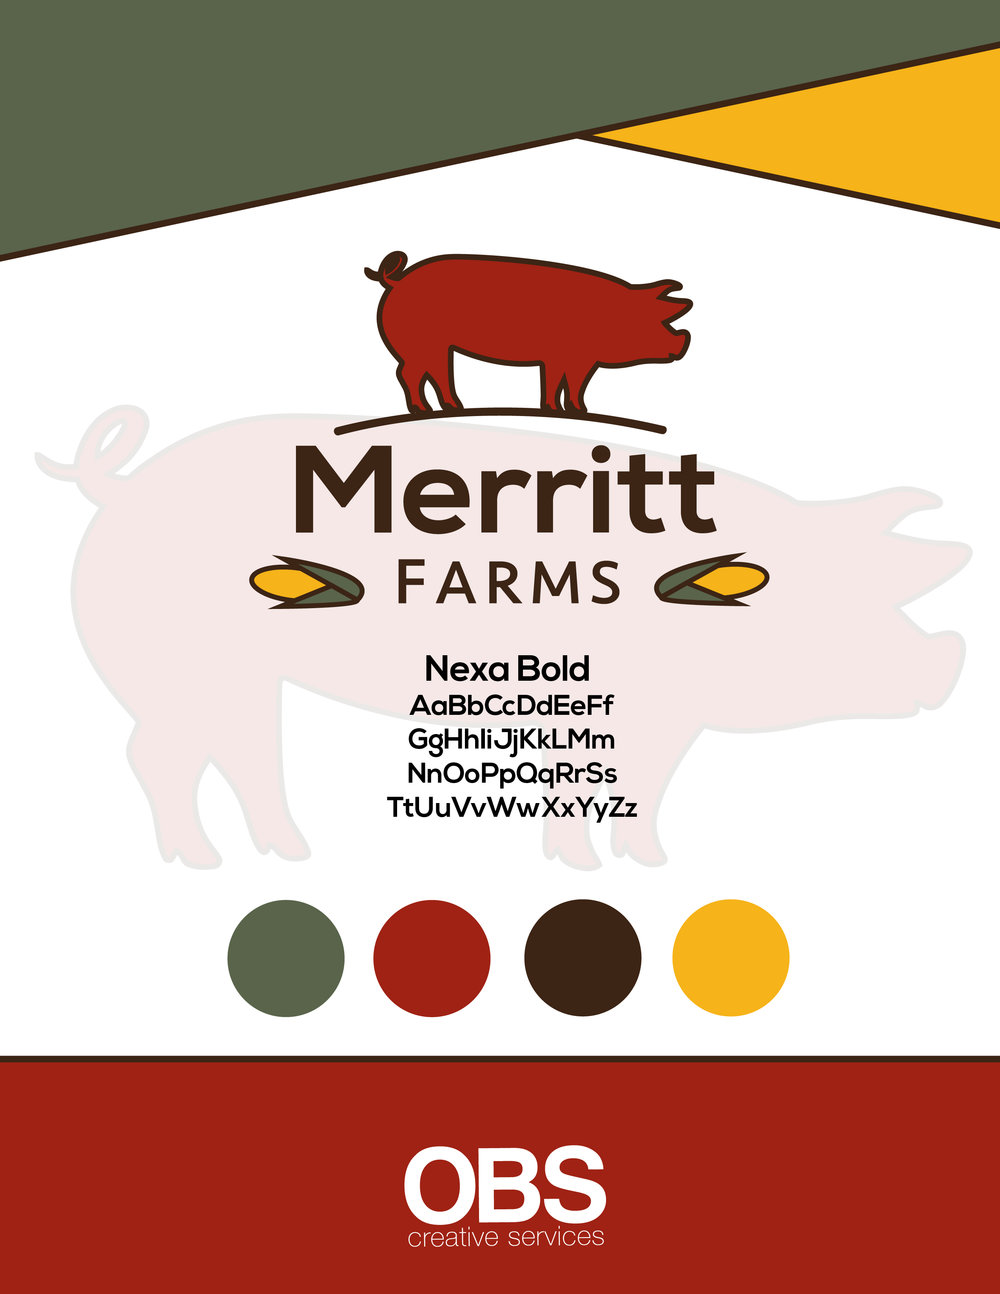 MCB Recruit CardMerritt Farms.jpg